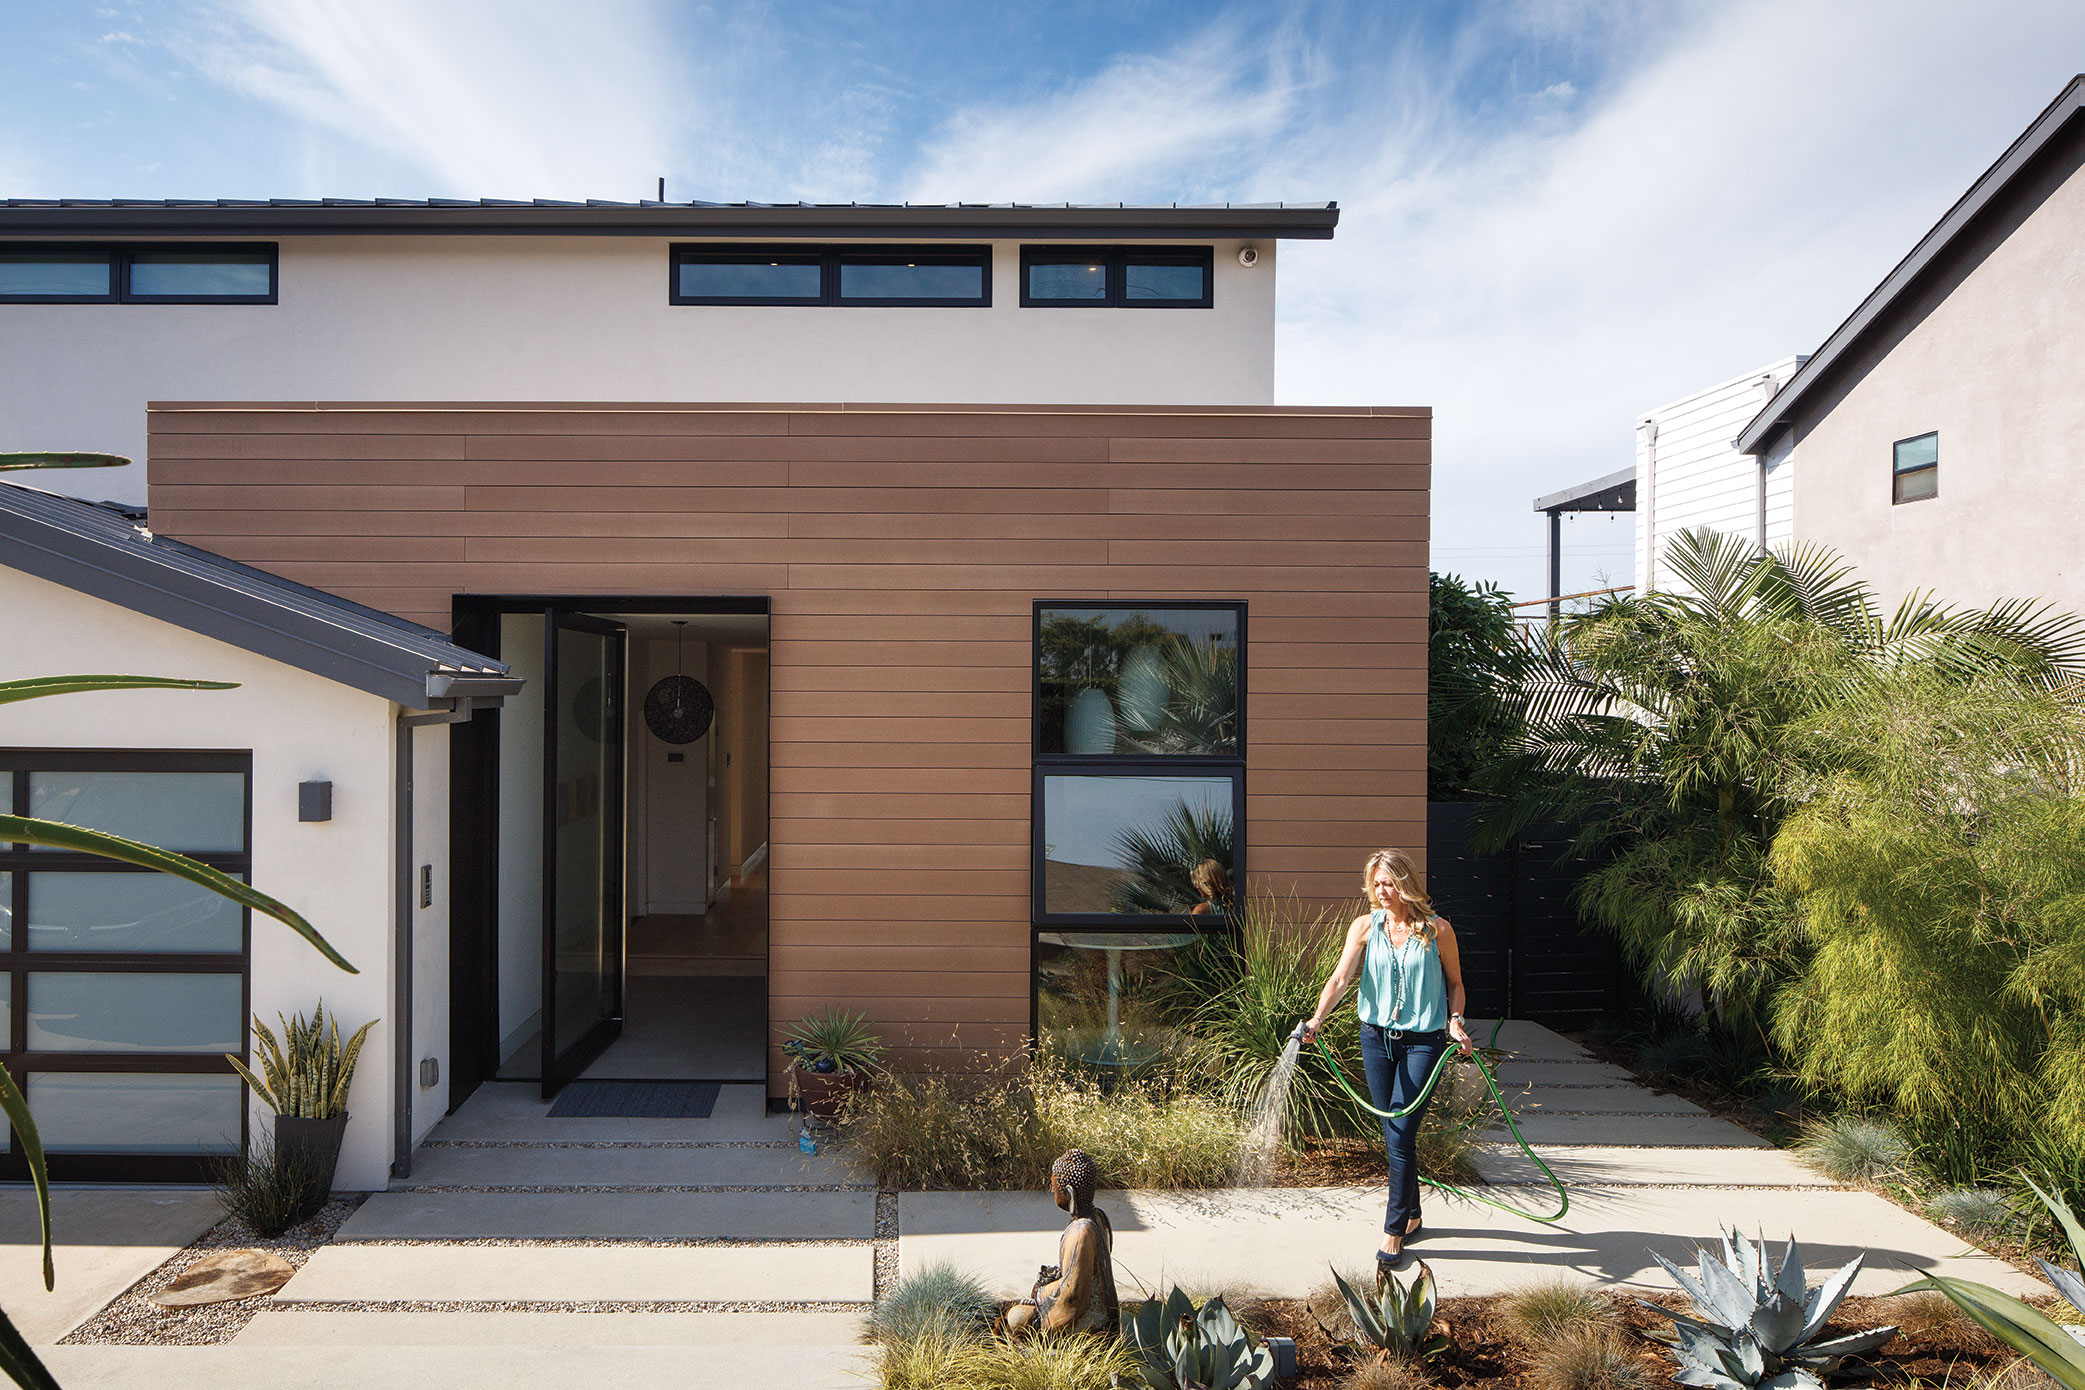 green home design LEED certified platinum resysta cladding sustainable